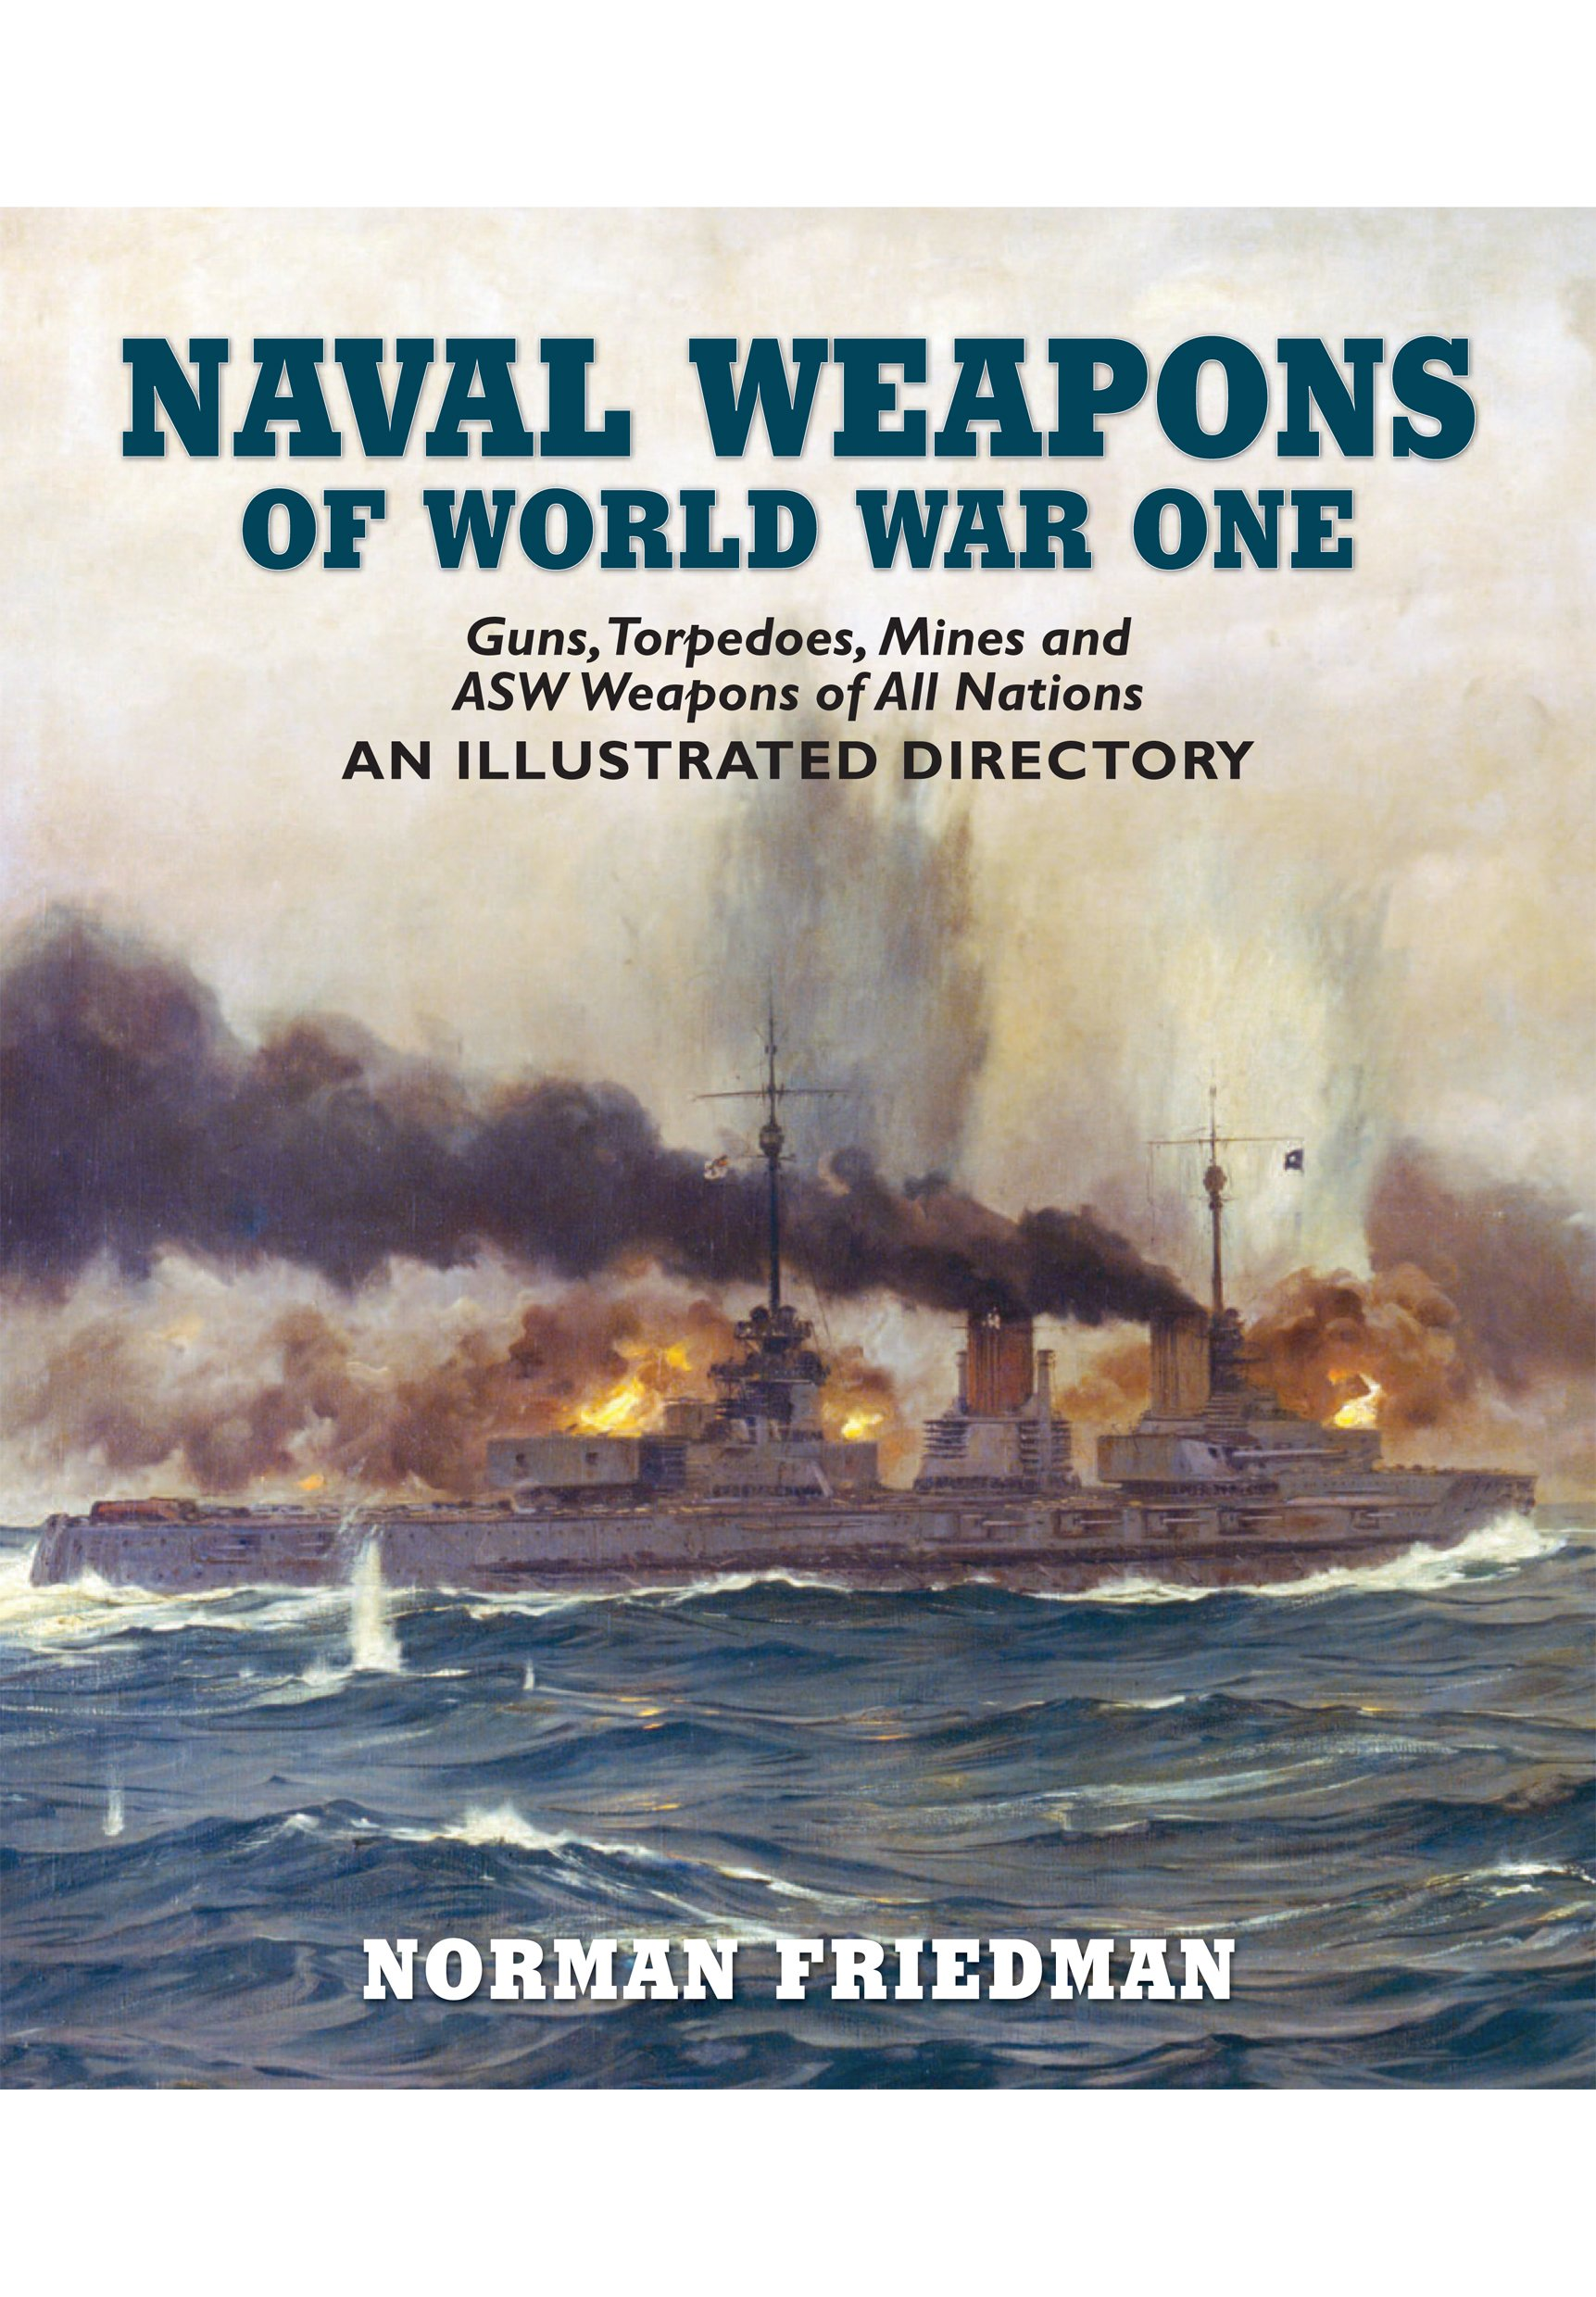 Download Naval Weapons of World War One: Guns, Torpedoes, Mines, and ASW Weapons of All Nations: An Illustrated Directory ebook